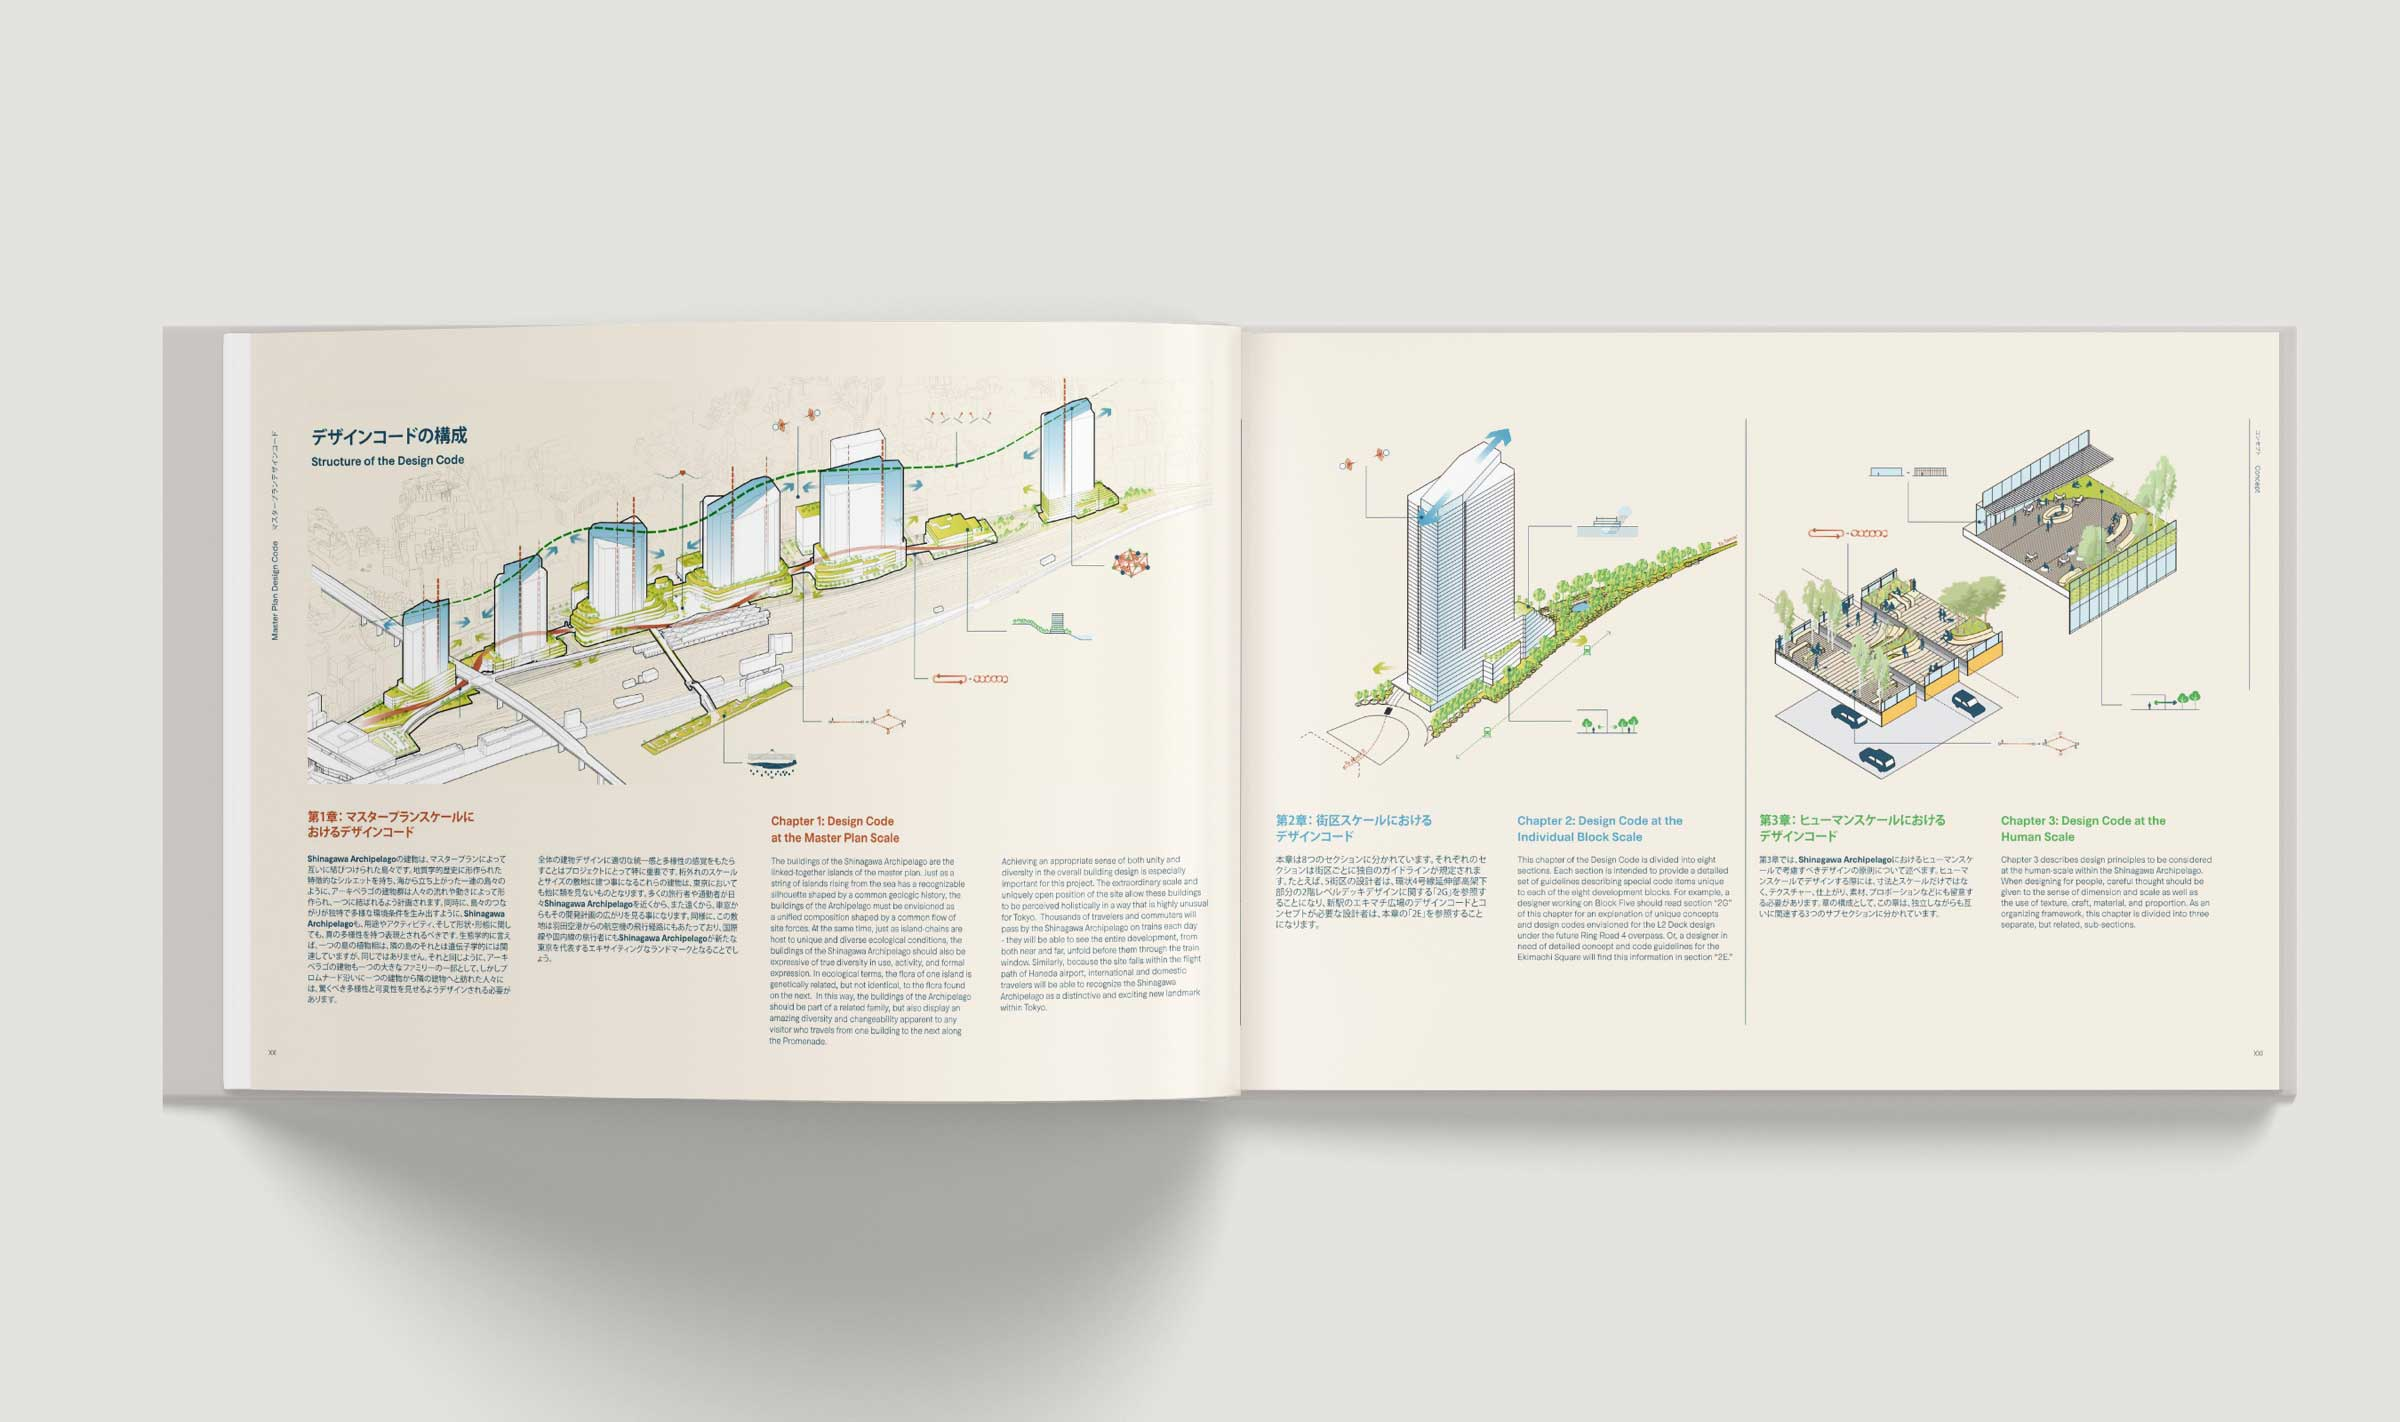 Open book showing a spread introducing each of the chapters. The left page shows an overall axonometric diagram of the master plan, and the right page shows a building axonometric with detail cutaway axonometric diagrams.